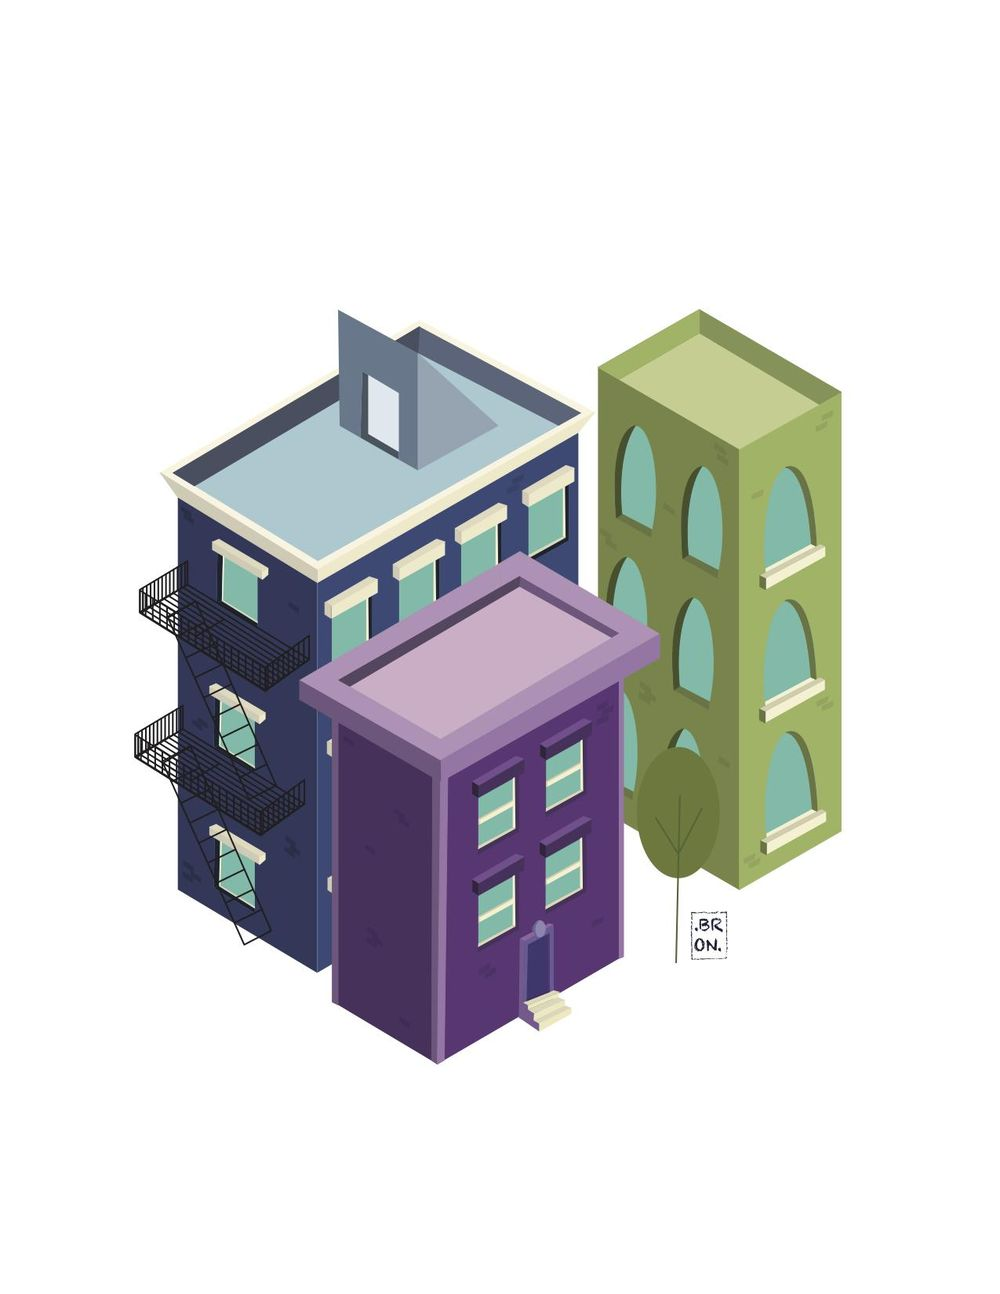 Isometric Buildings - image 3 - student project